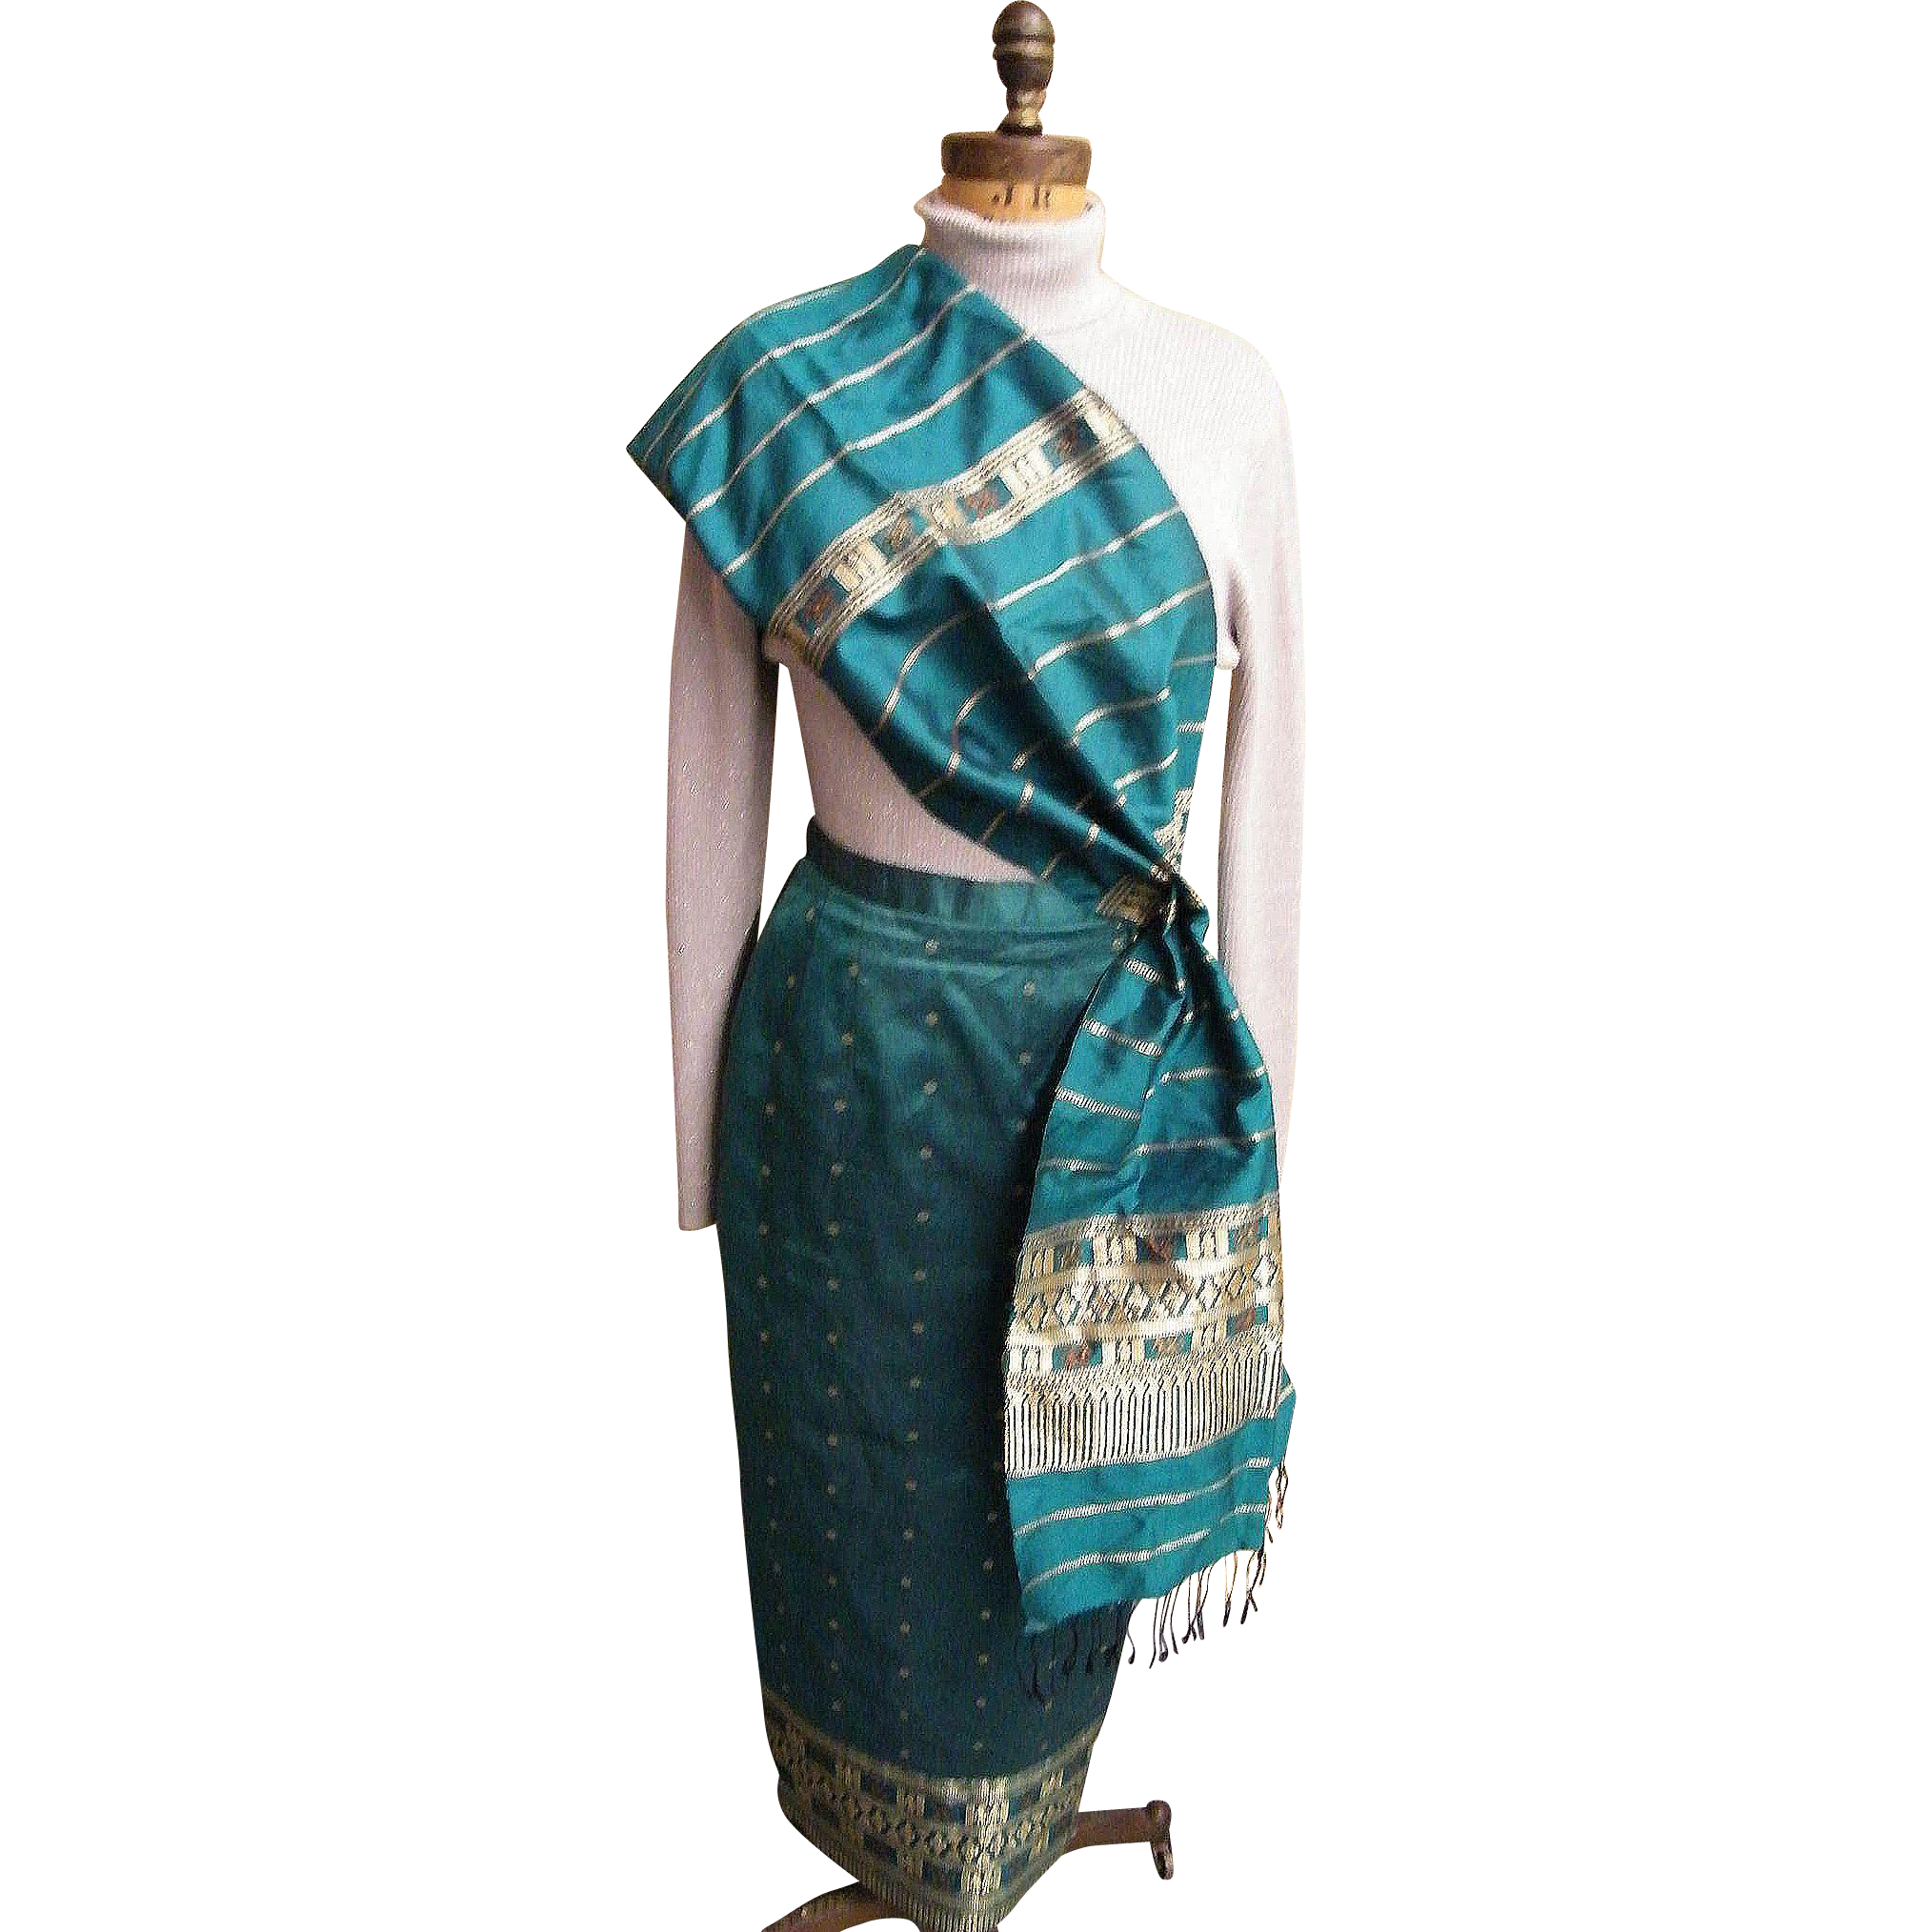 East Indian Green With Gold Metallic Accents Thai Silk